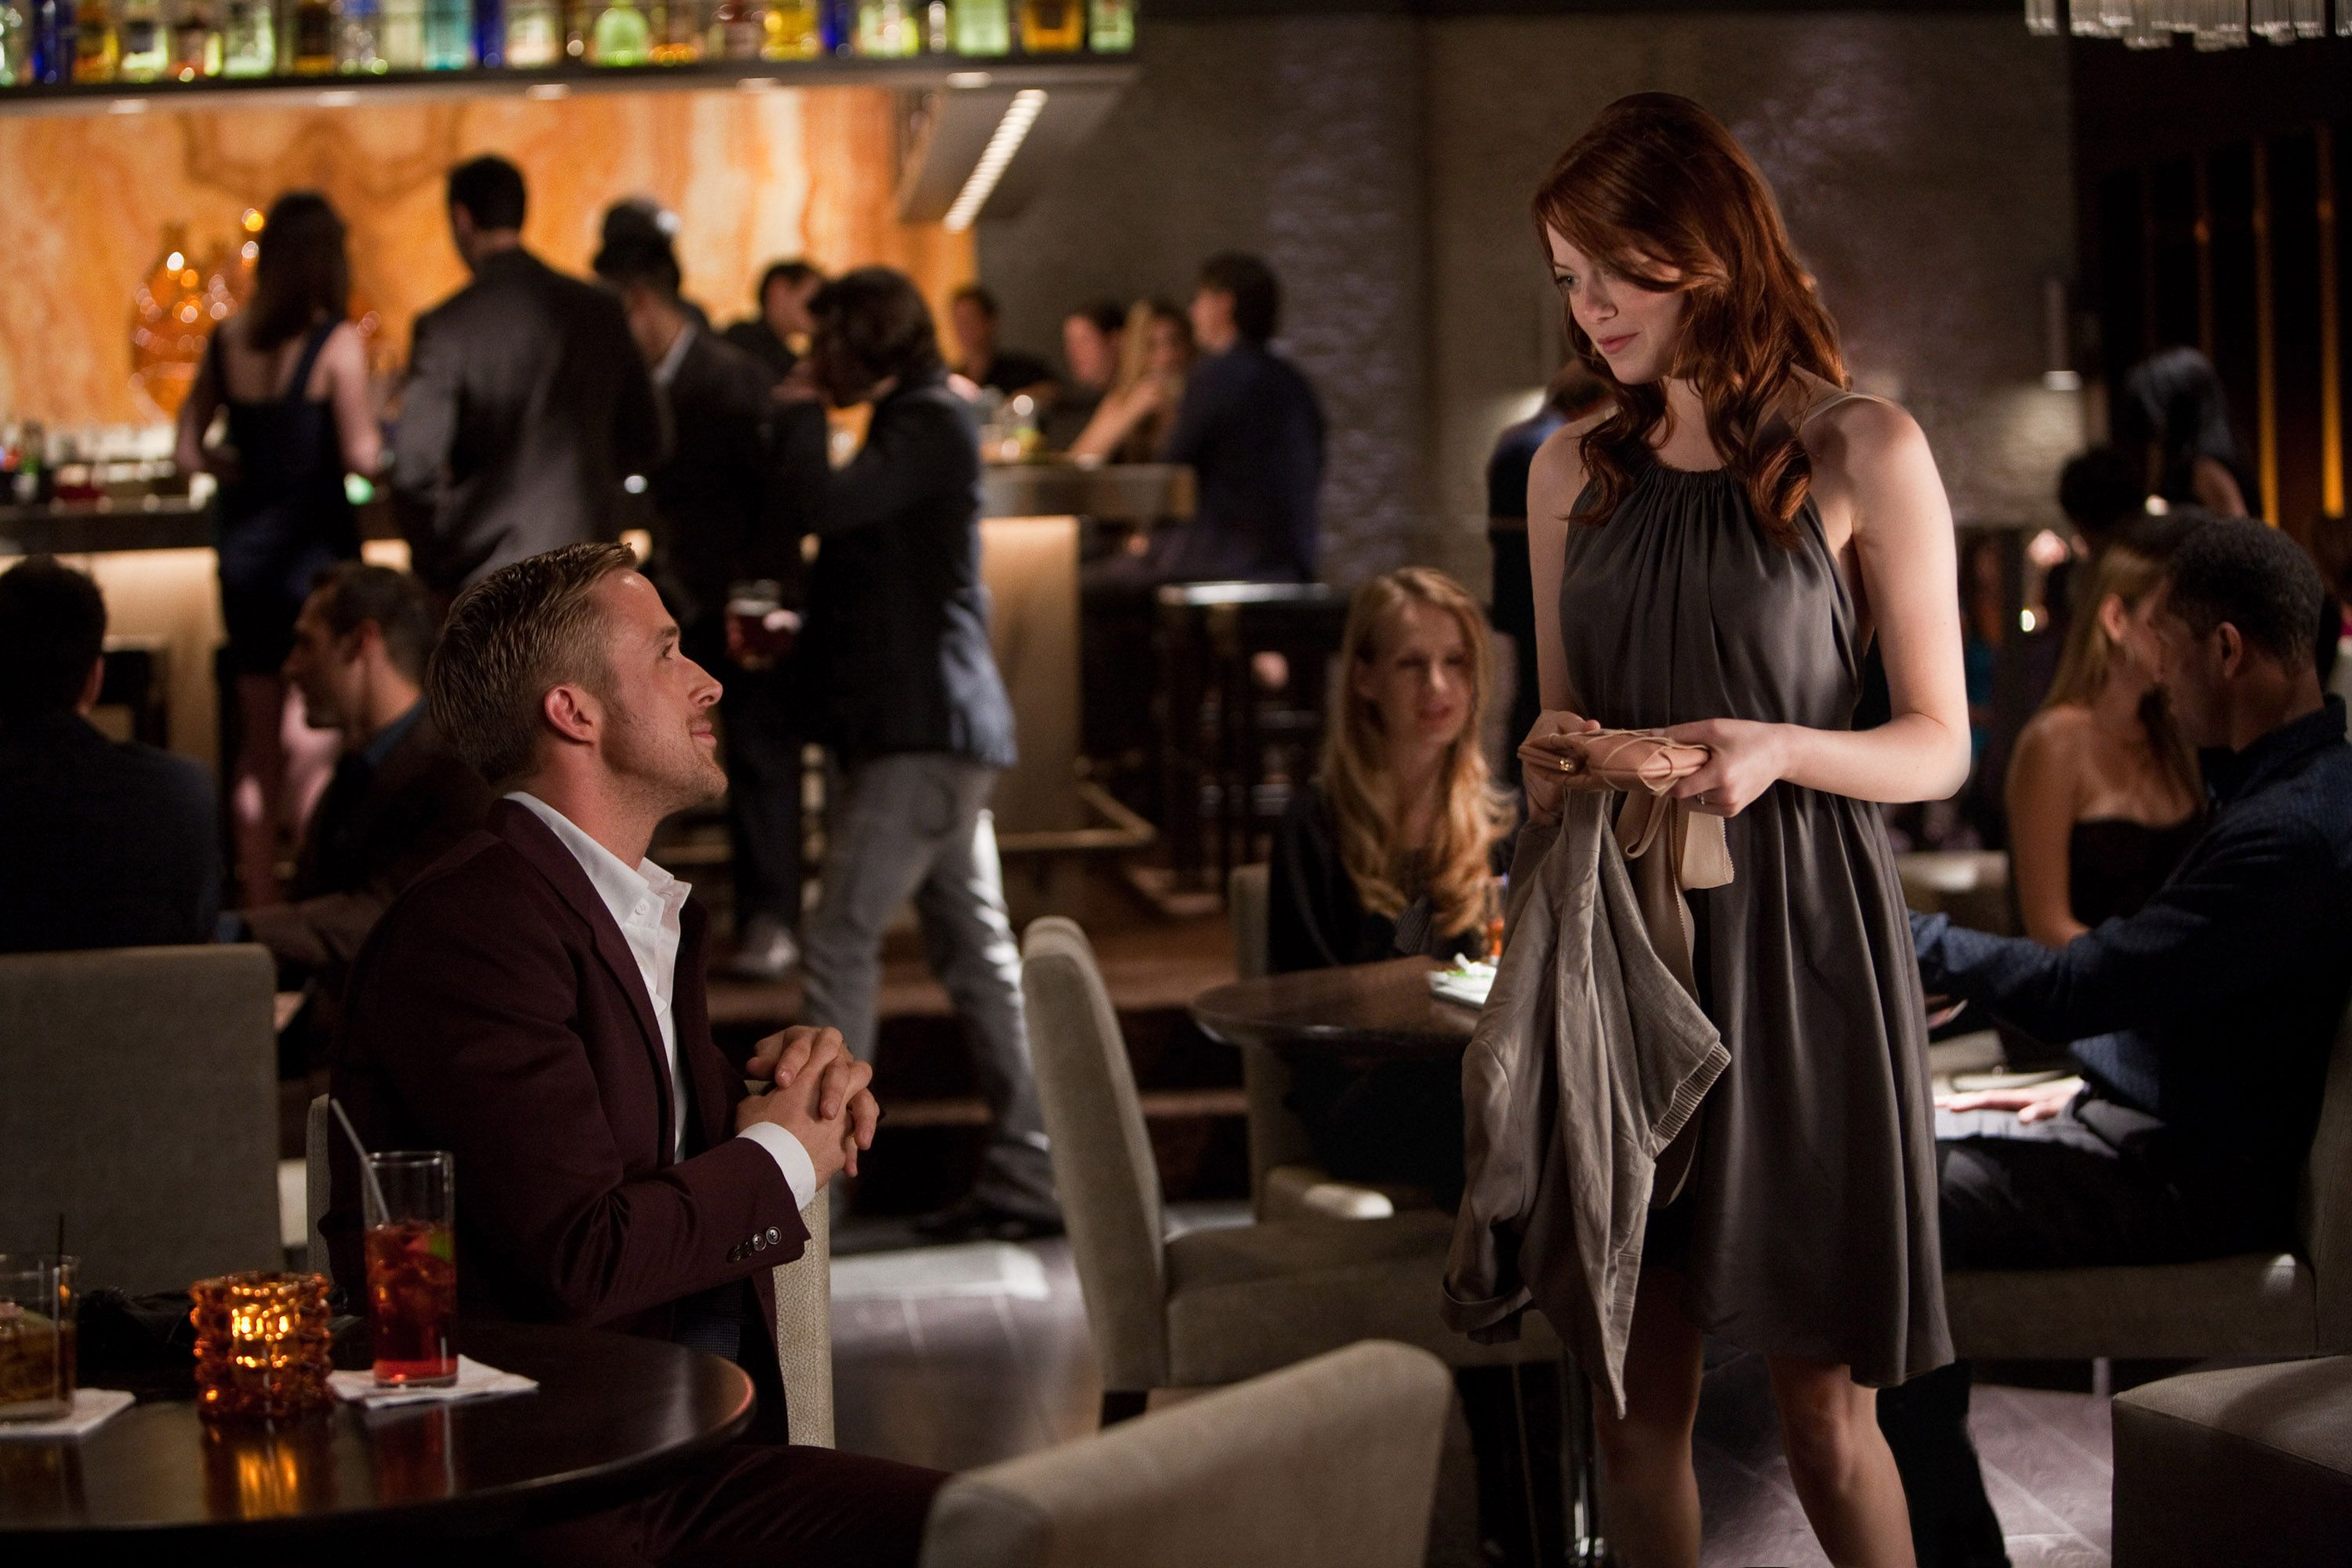 crazy-stupid-love-movie-image-ryan-gosling-emma-stone-02.jpg (3000×2000)